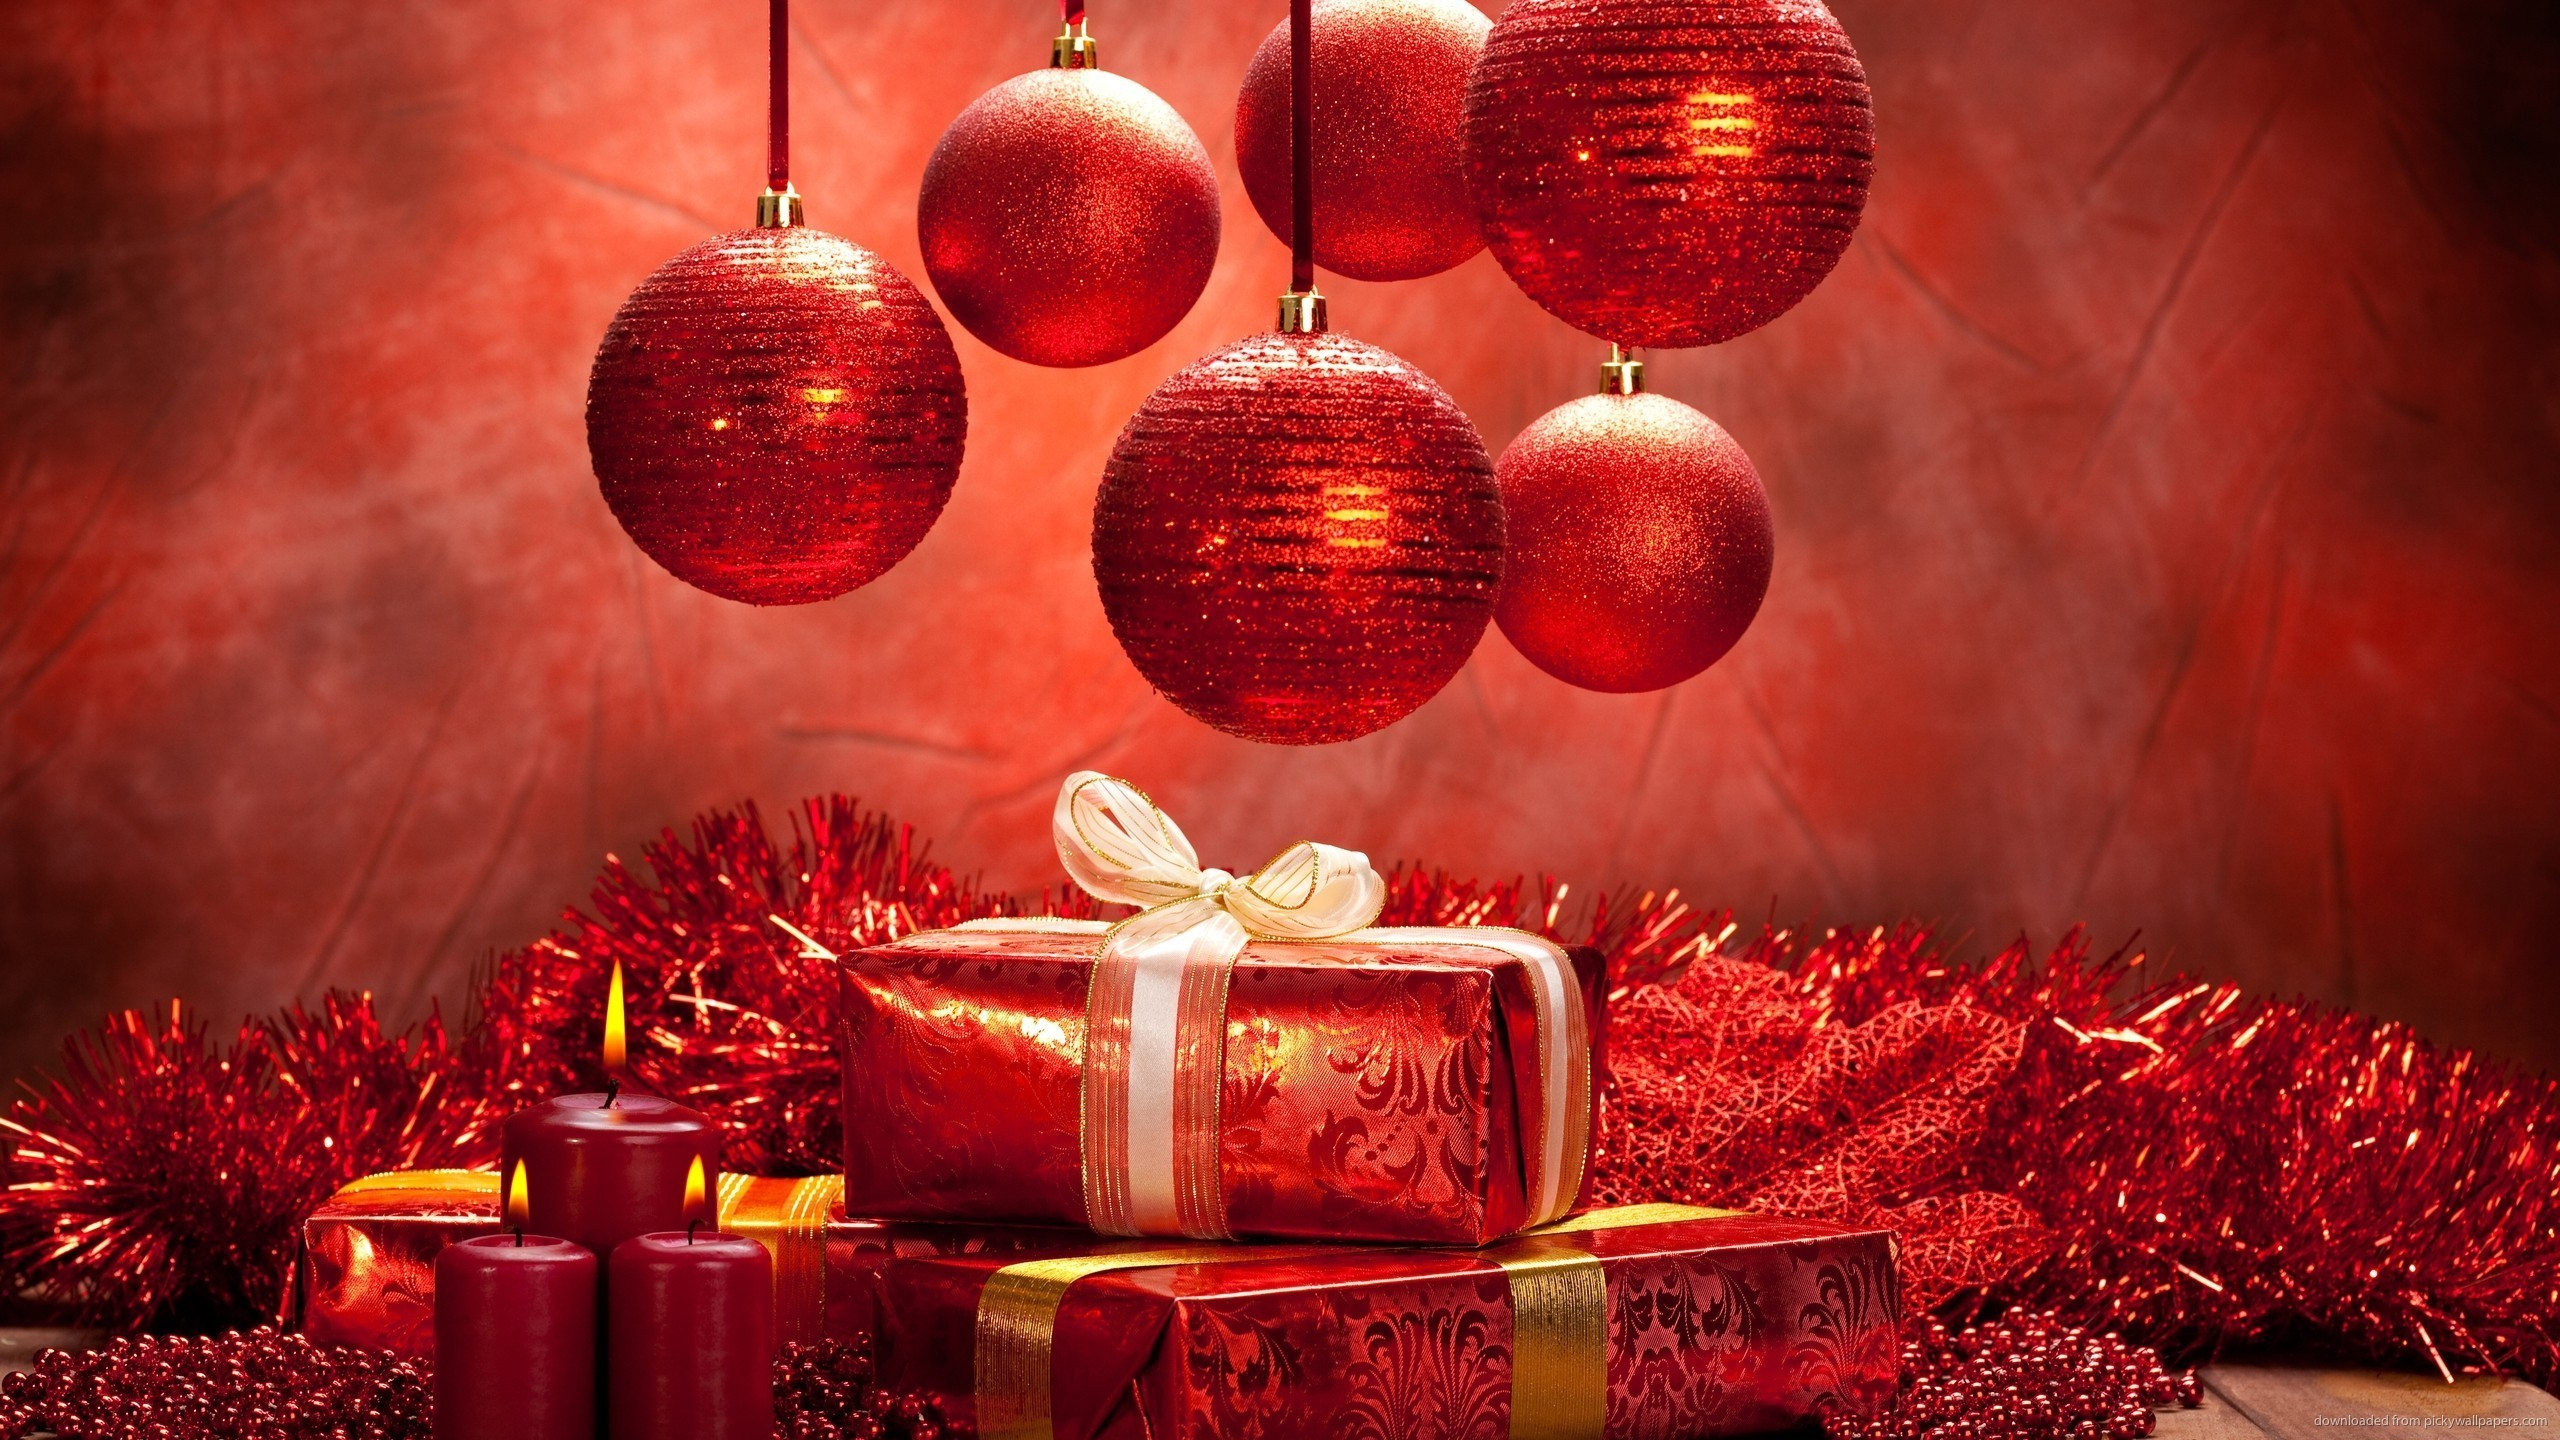 2560x1440 Red Christmas Presents and Balls for